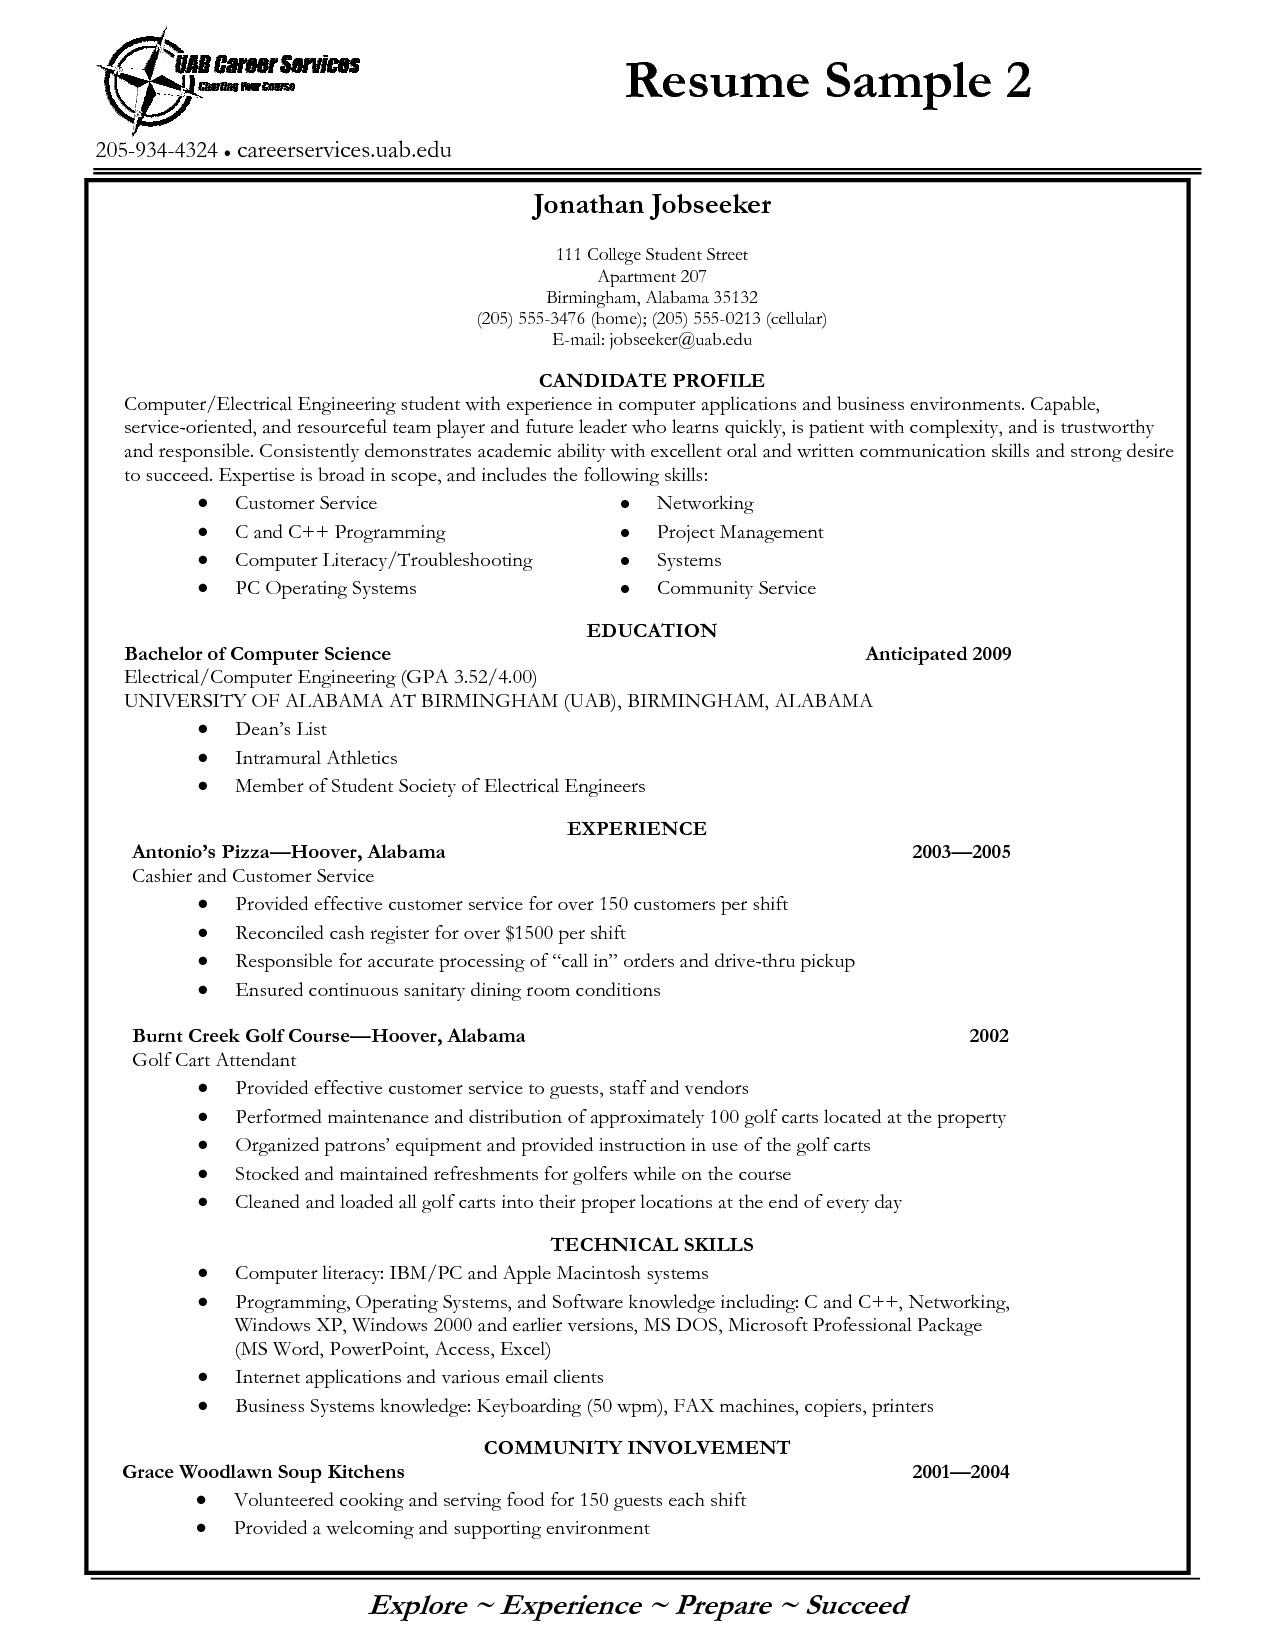 Tags College Graduate Resume No Experience College Graduate Resume ...  Student ...  How To Make A Resume For A College Student